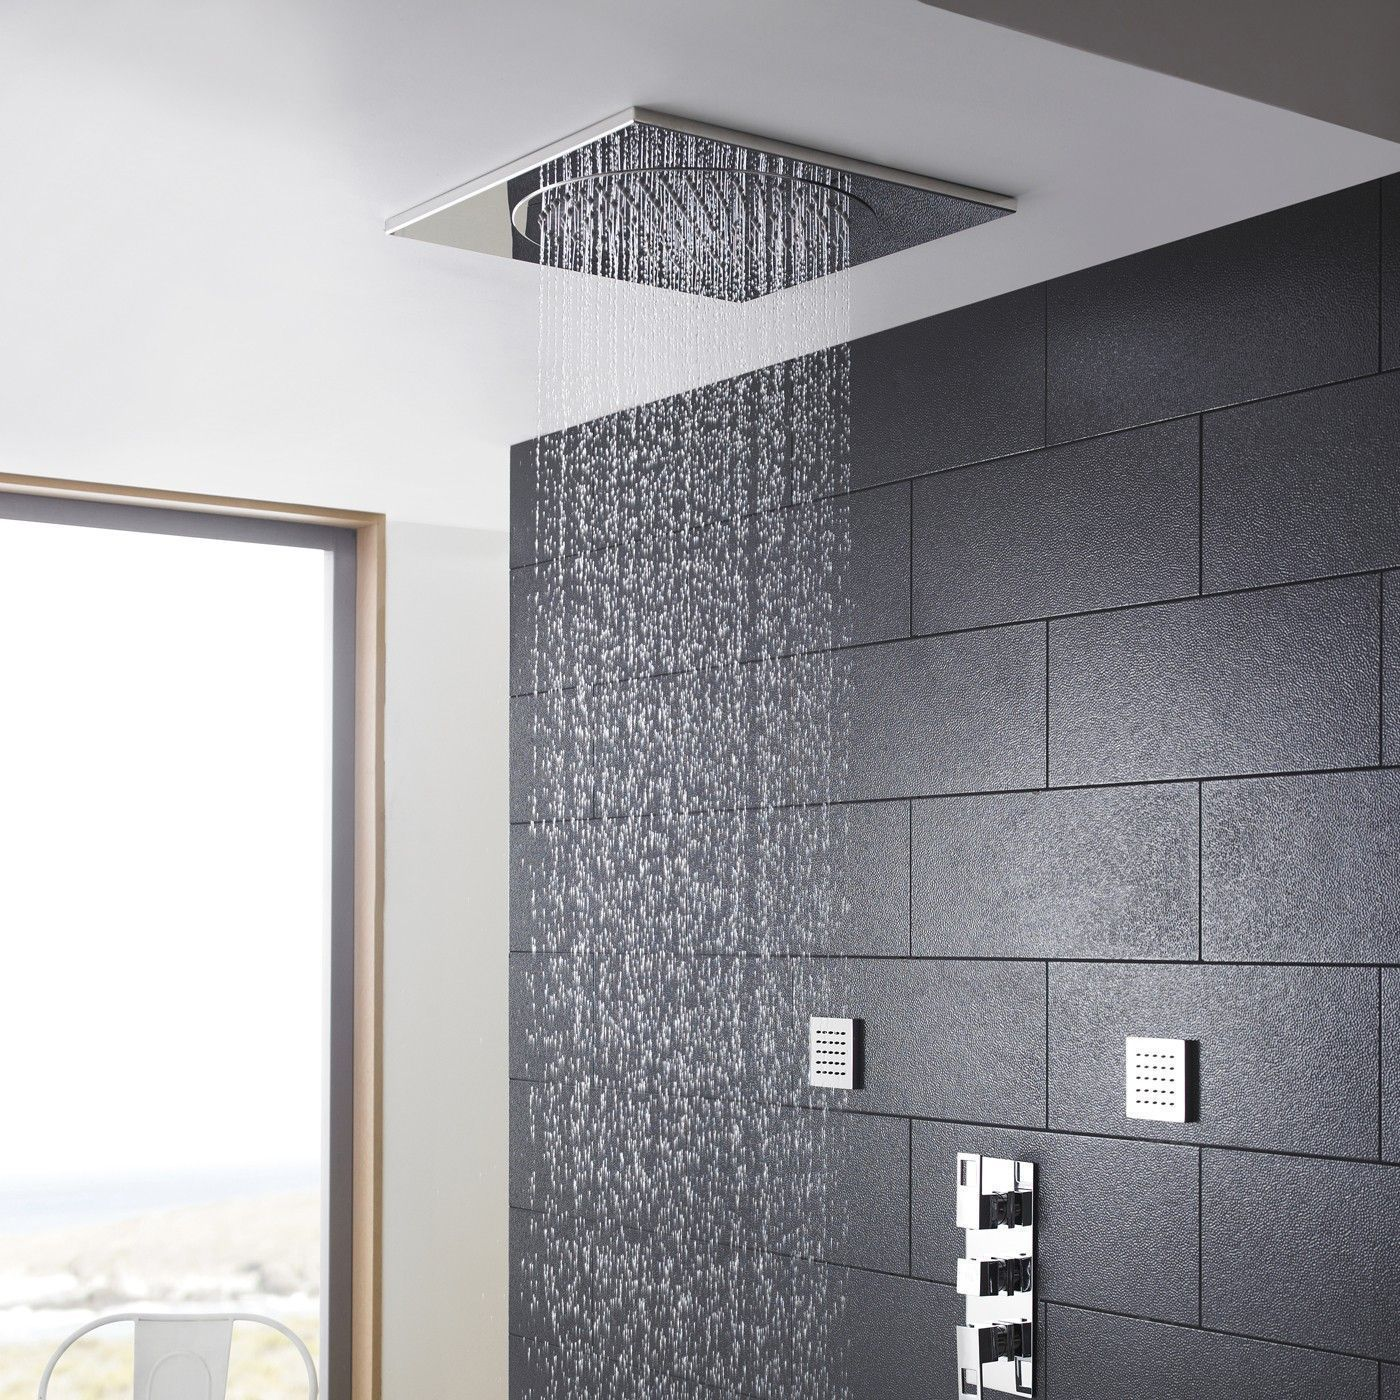 Enjoy a spa-like showering experience with this ceiling tile shower head